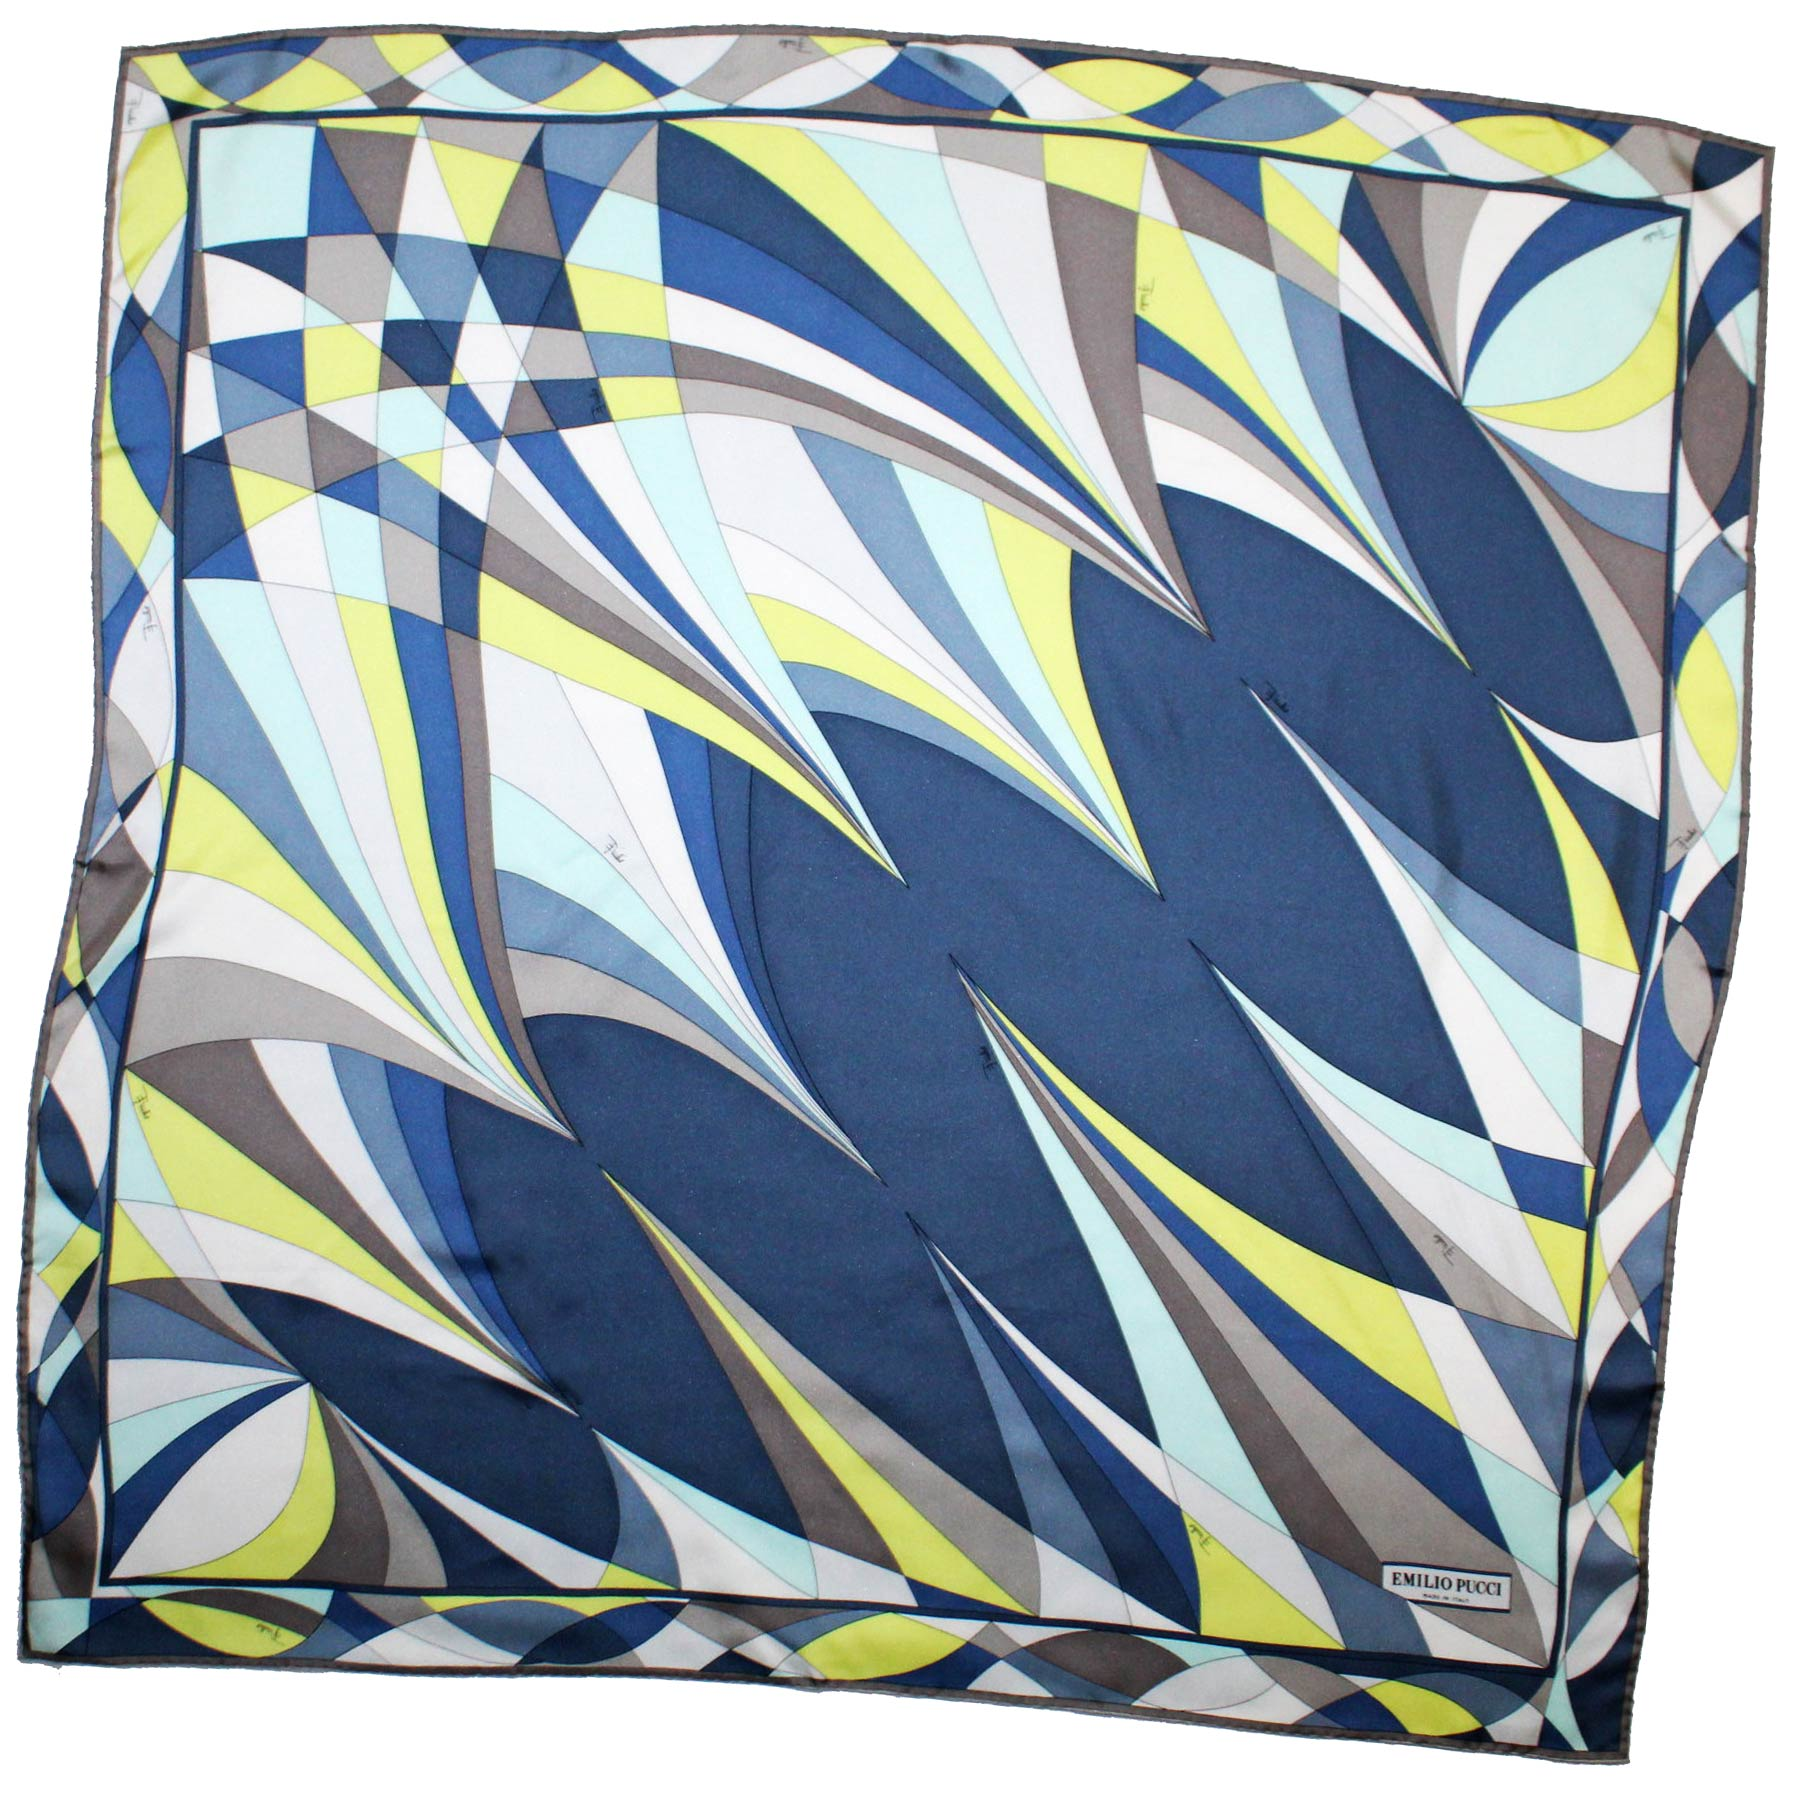 Emilio Pucci Silk Scarf Gray Navy Yellow Design - Large Twill Silk Square Scarf